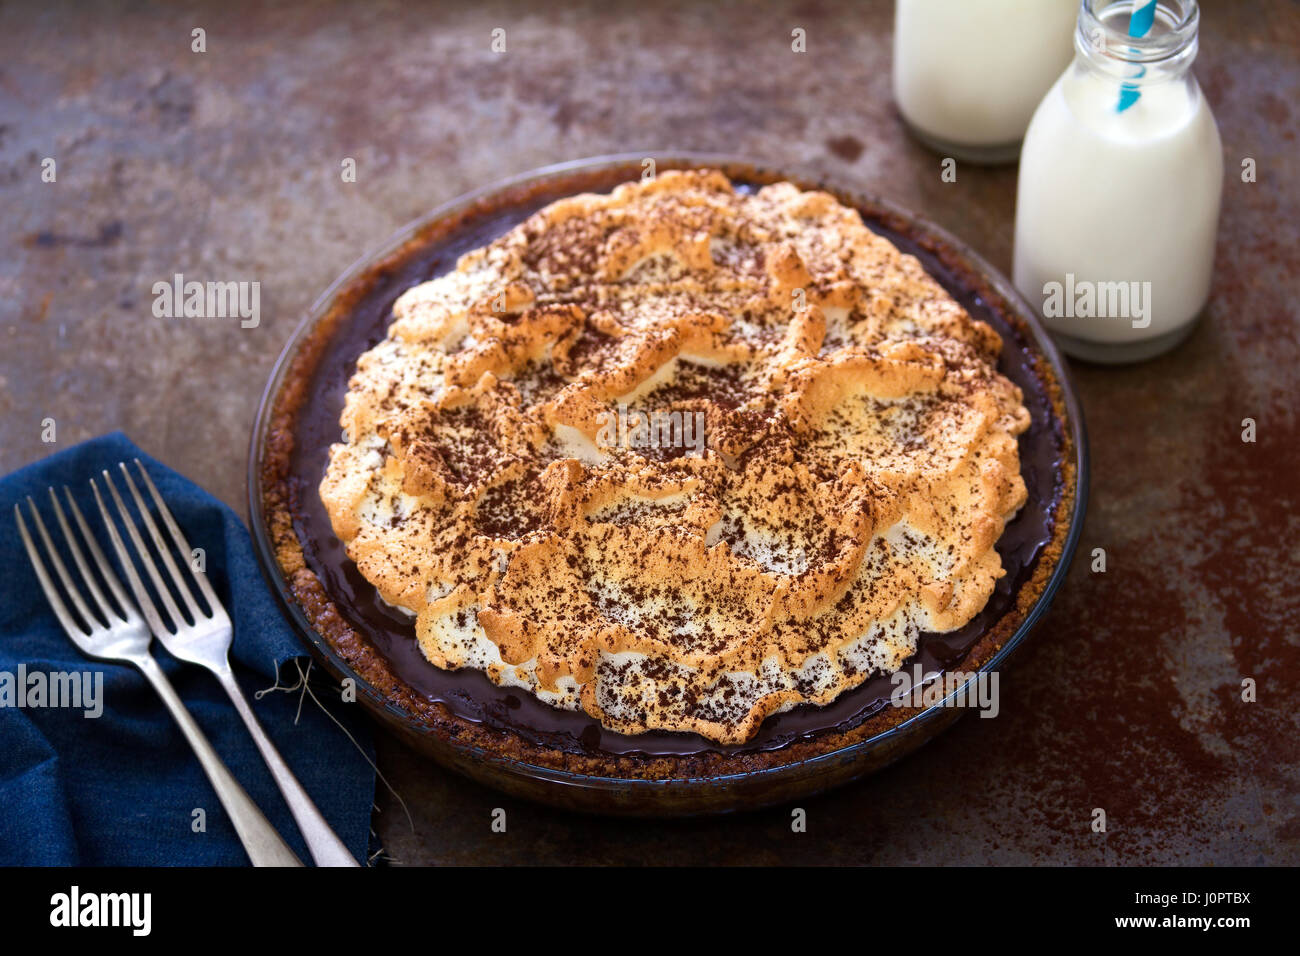 Chocolate meringue pie with cocoa - Stock Image